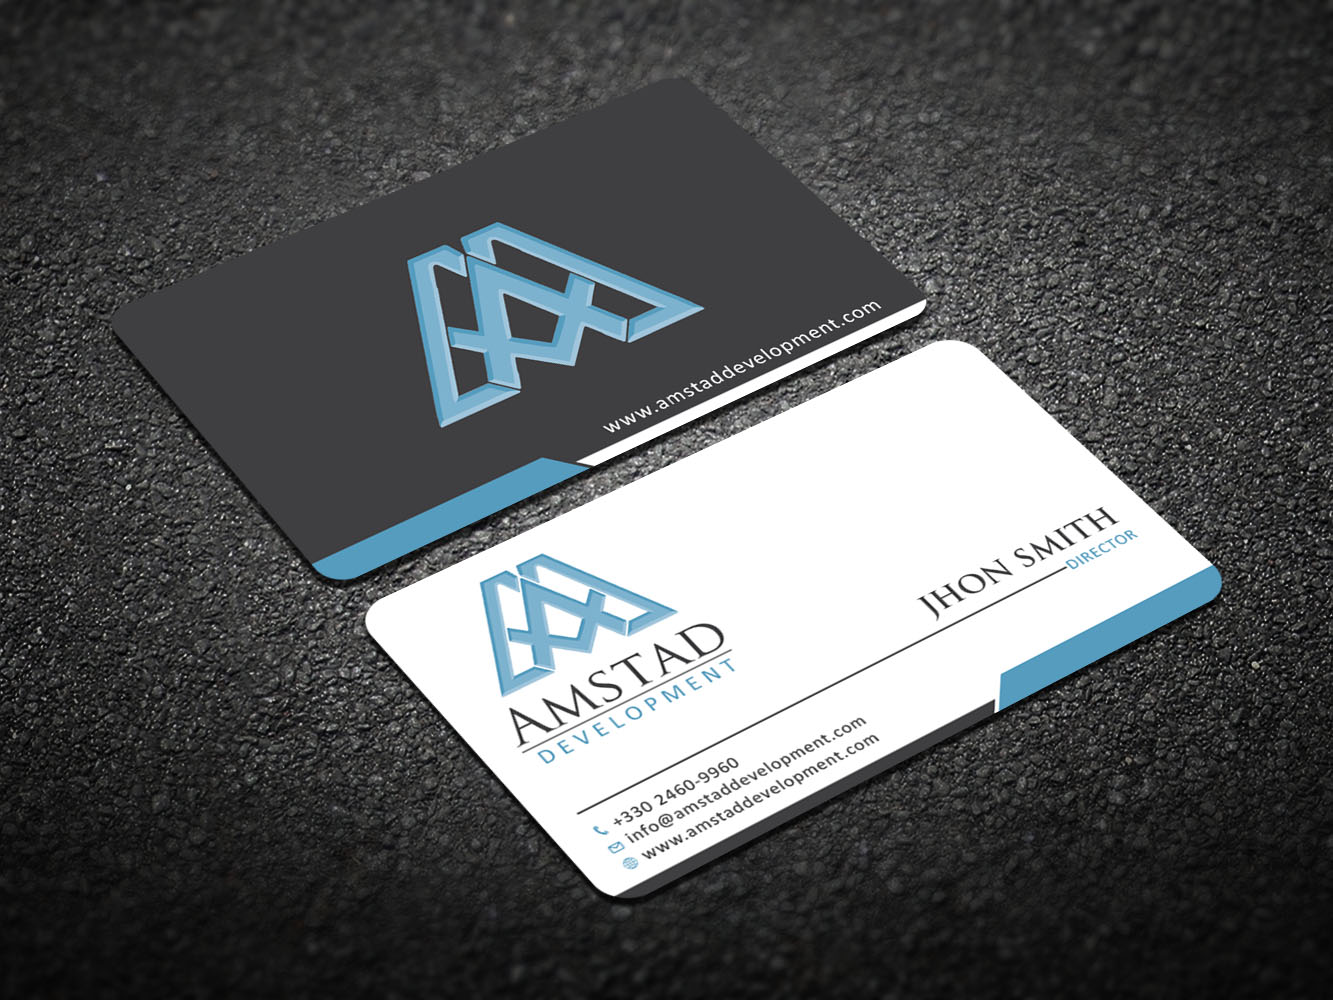 Elegant professional real estate development business card design business card design by design xeneration for this project design 10656383 reheart Image collections